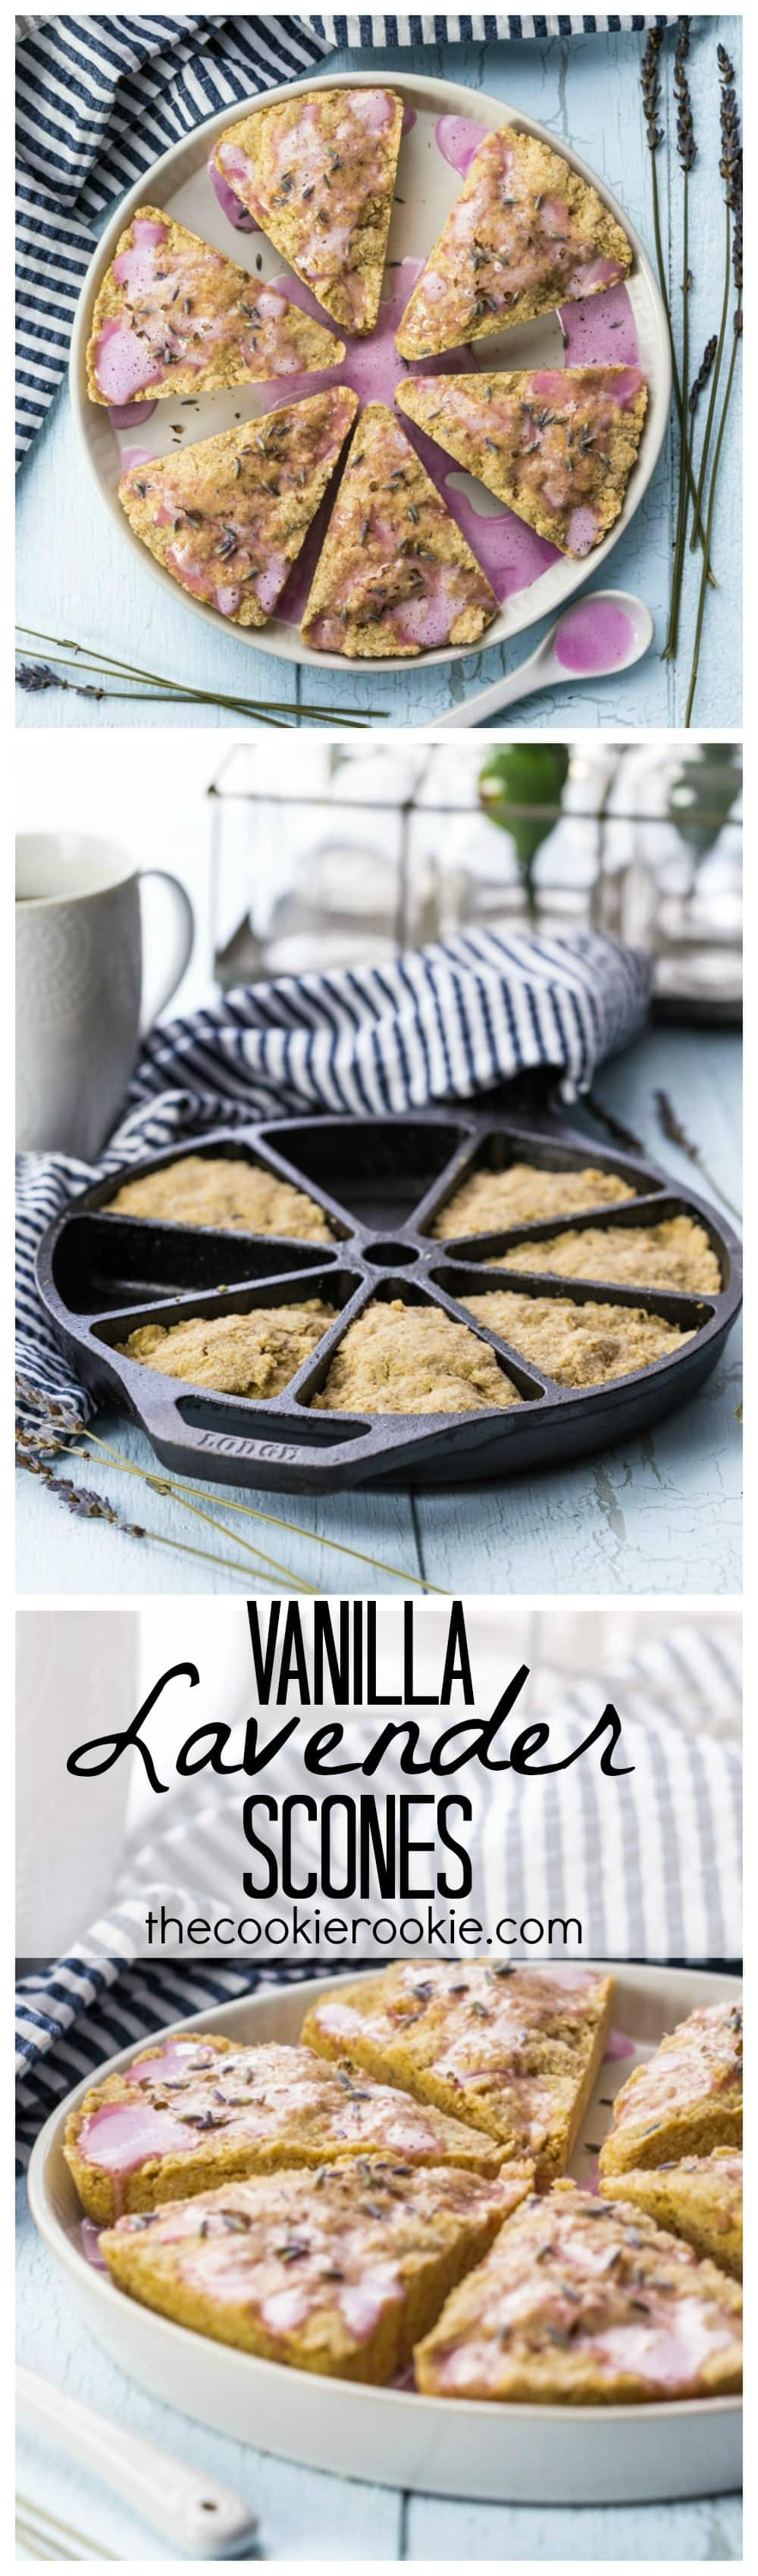 Vanilla Lavender Scones; comforting, simple, and delicious! The best breakfast or mid-day snack with tea...amazing!